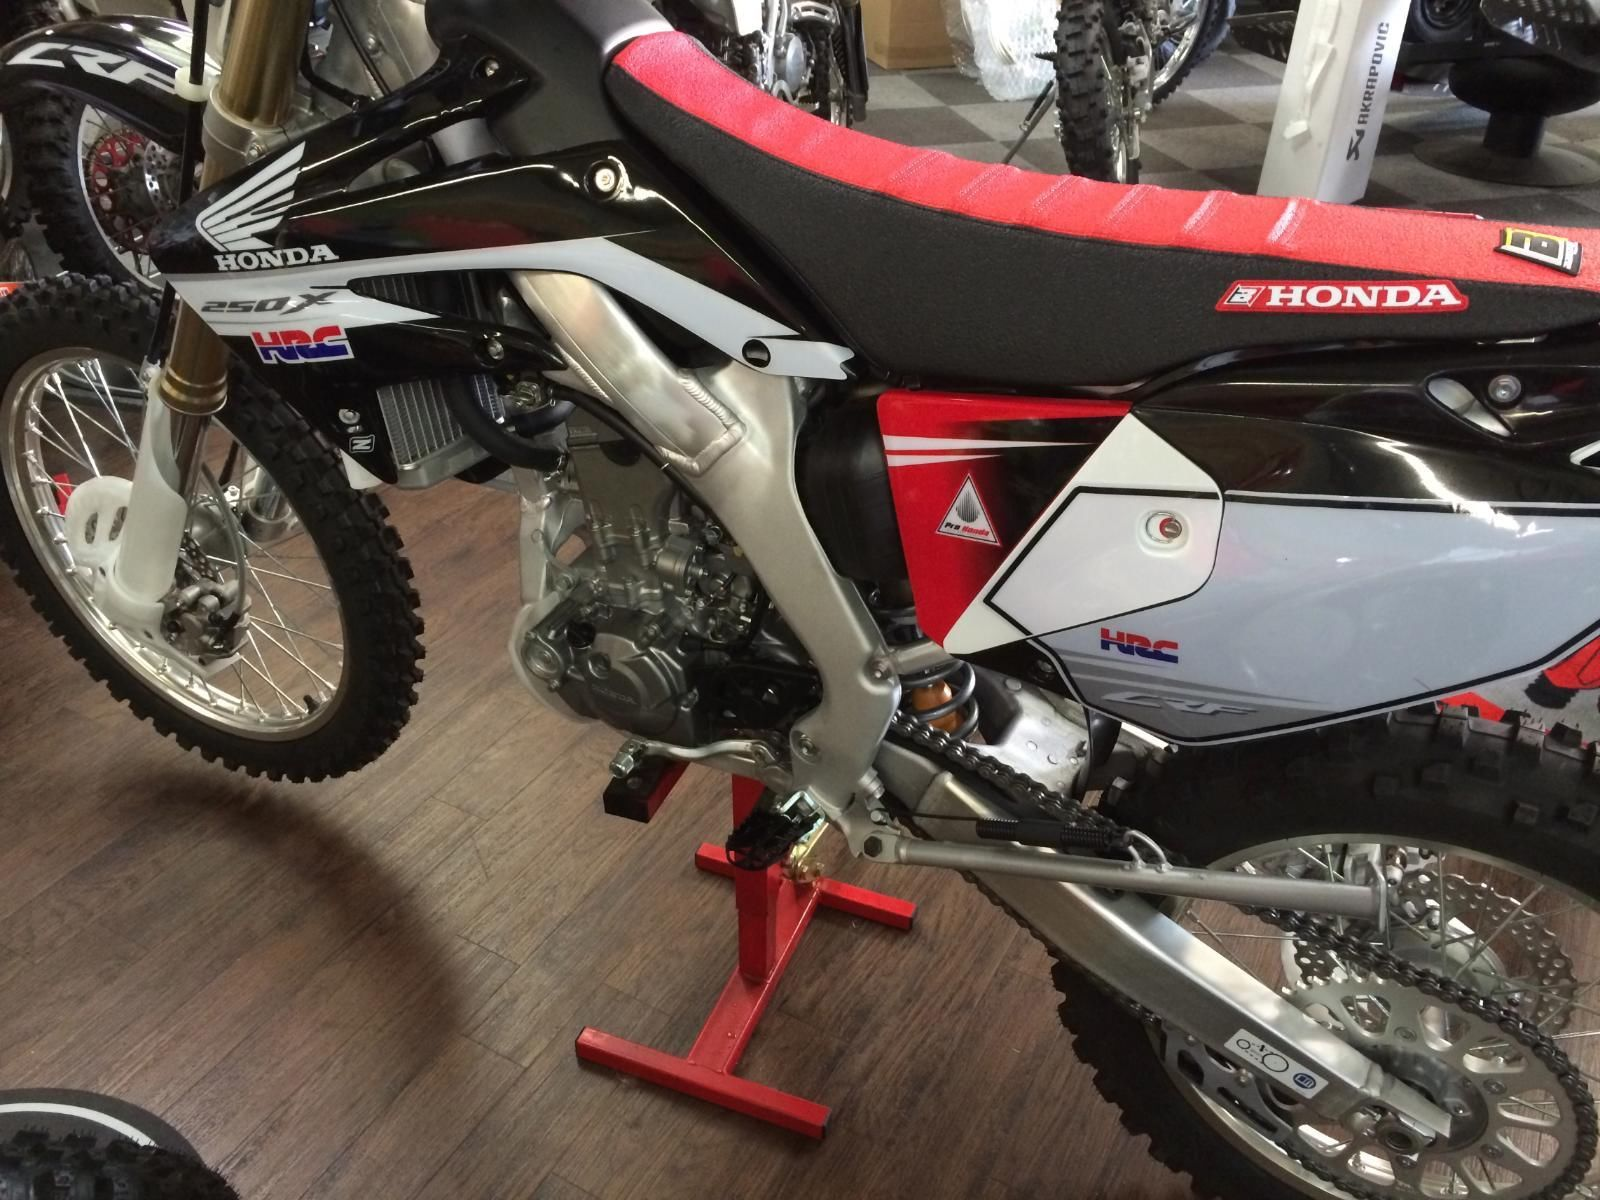 Honda Crf450x 2015 Enduro Road Legal Motorbike From 99 Pm 0